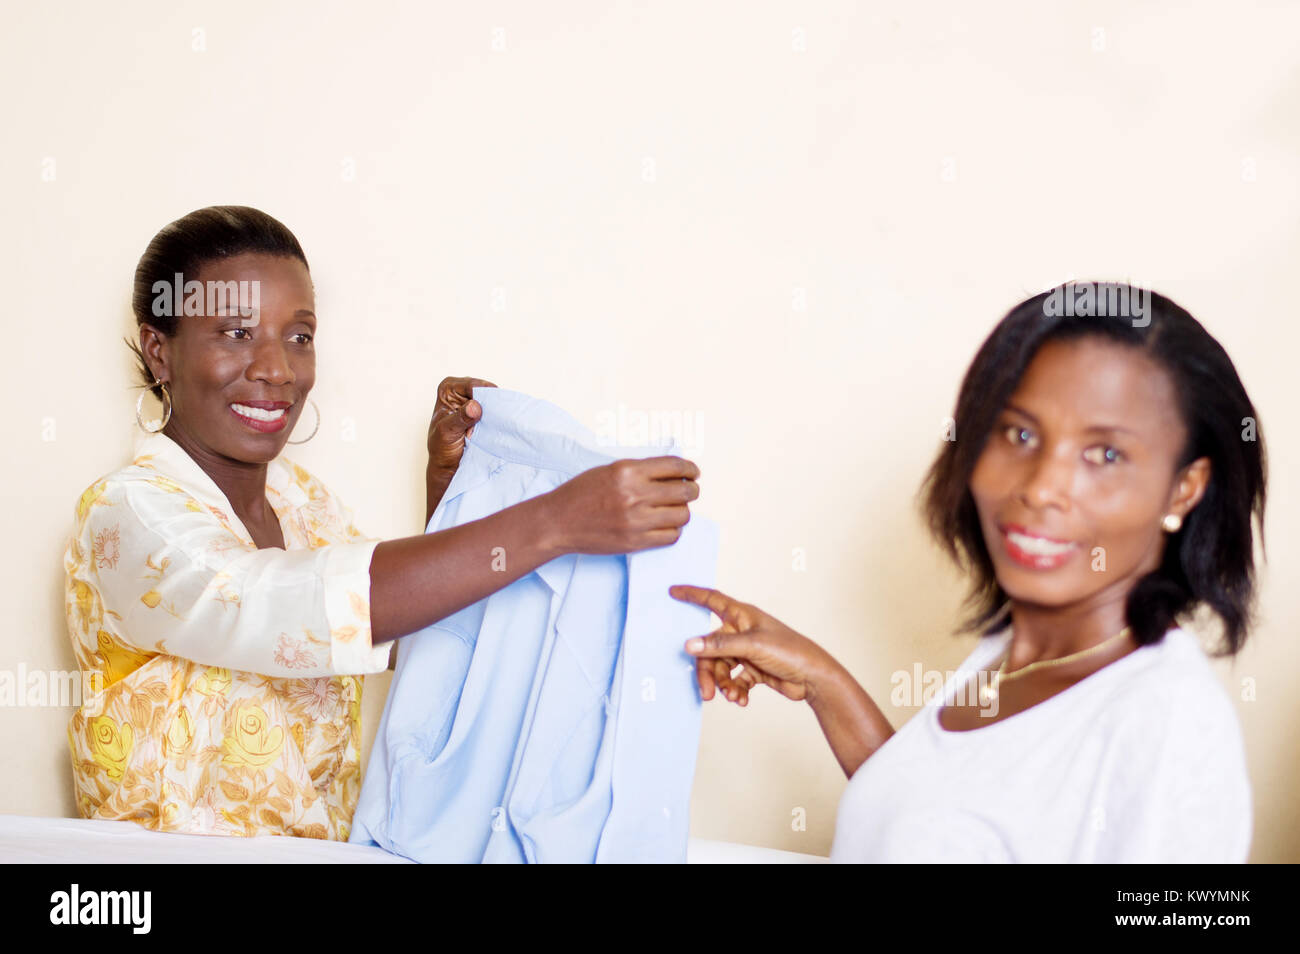 Teacher in sewing holds in her  hands a shirt that shows her  trainee. - Stock Image